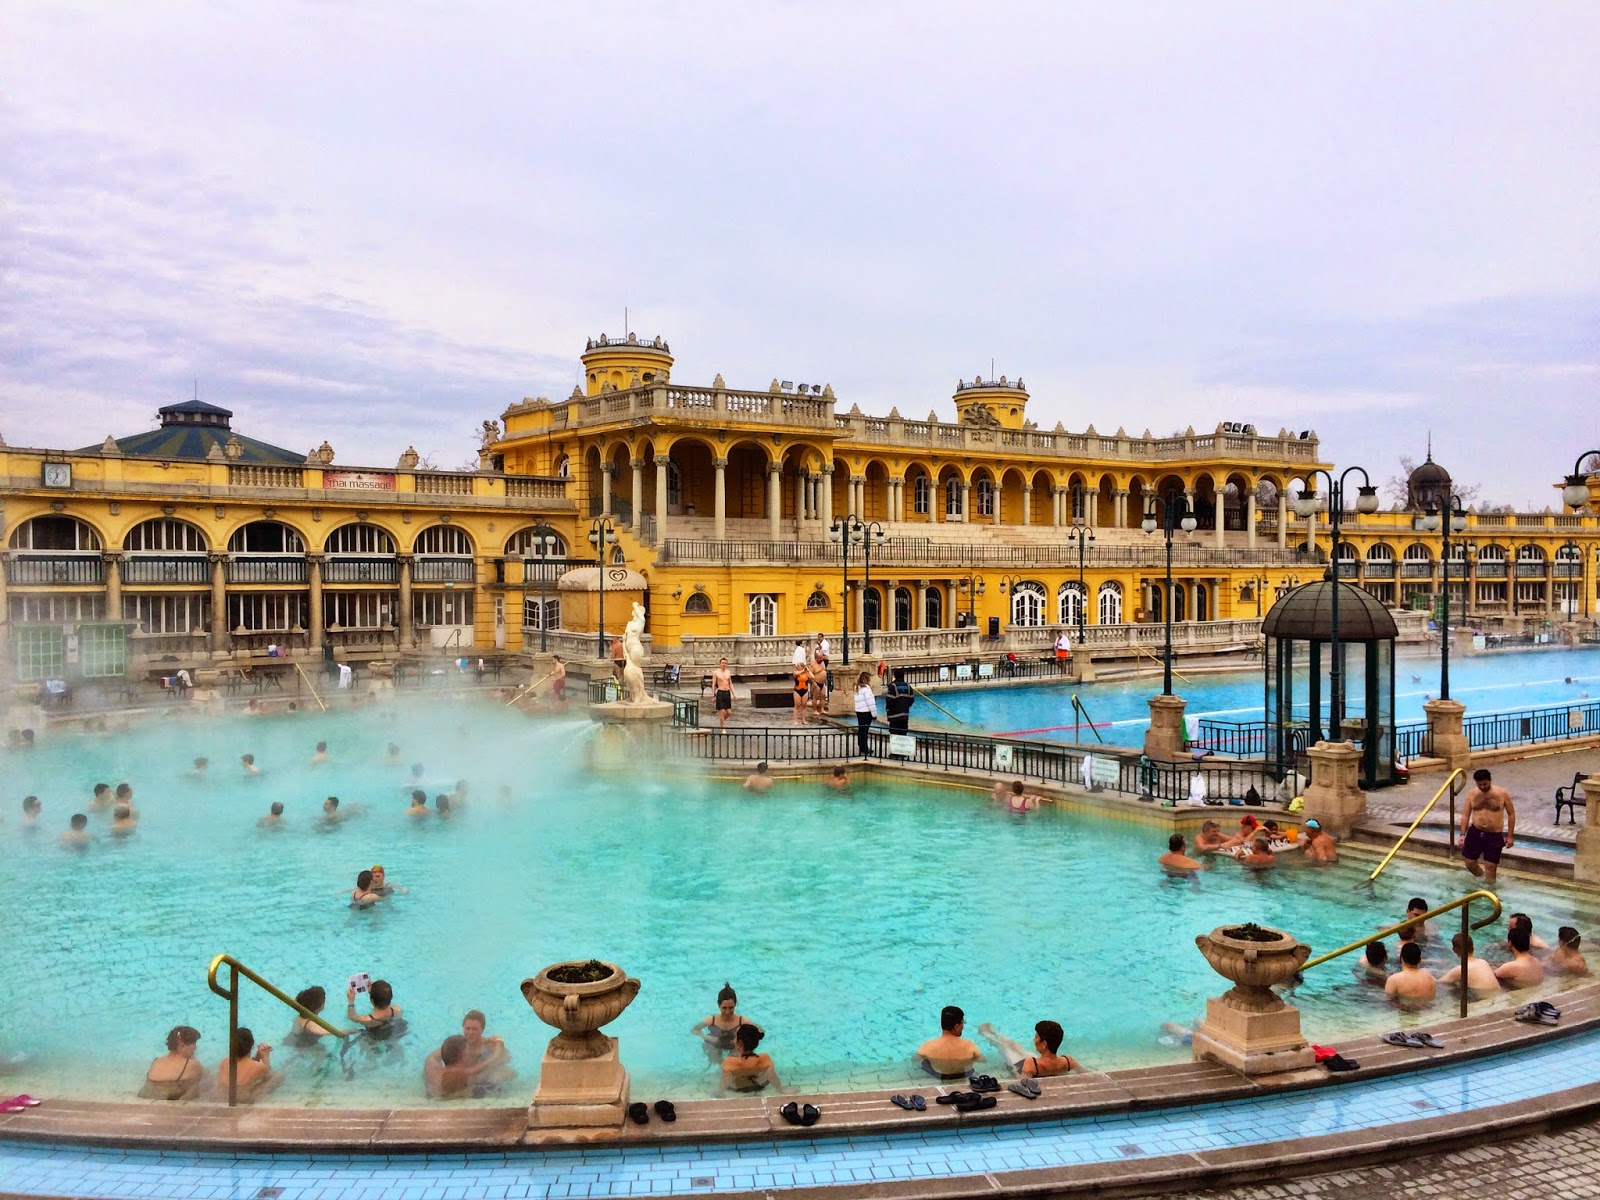 The Széchenyi Thermal Spa Baths, Budapest